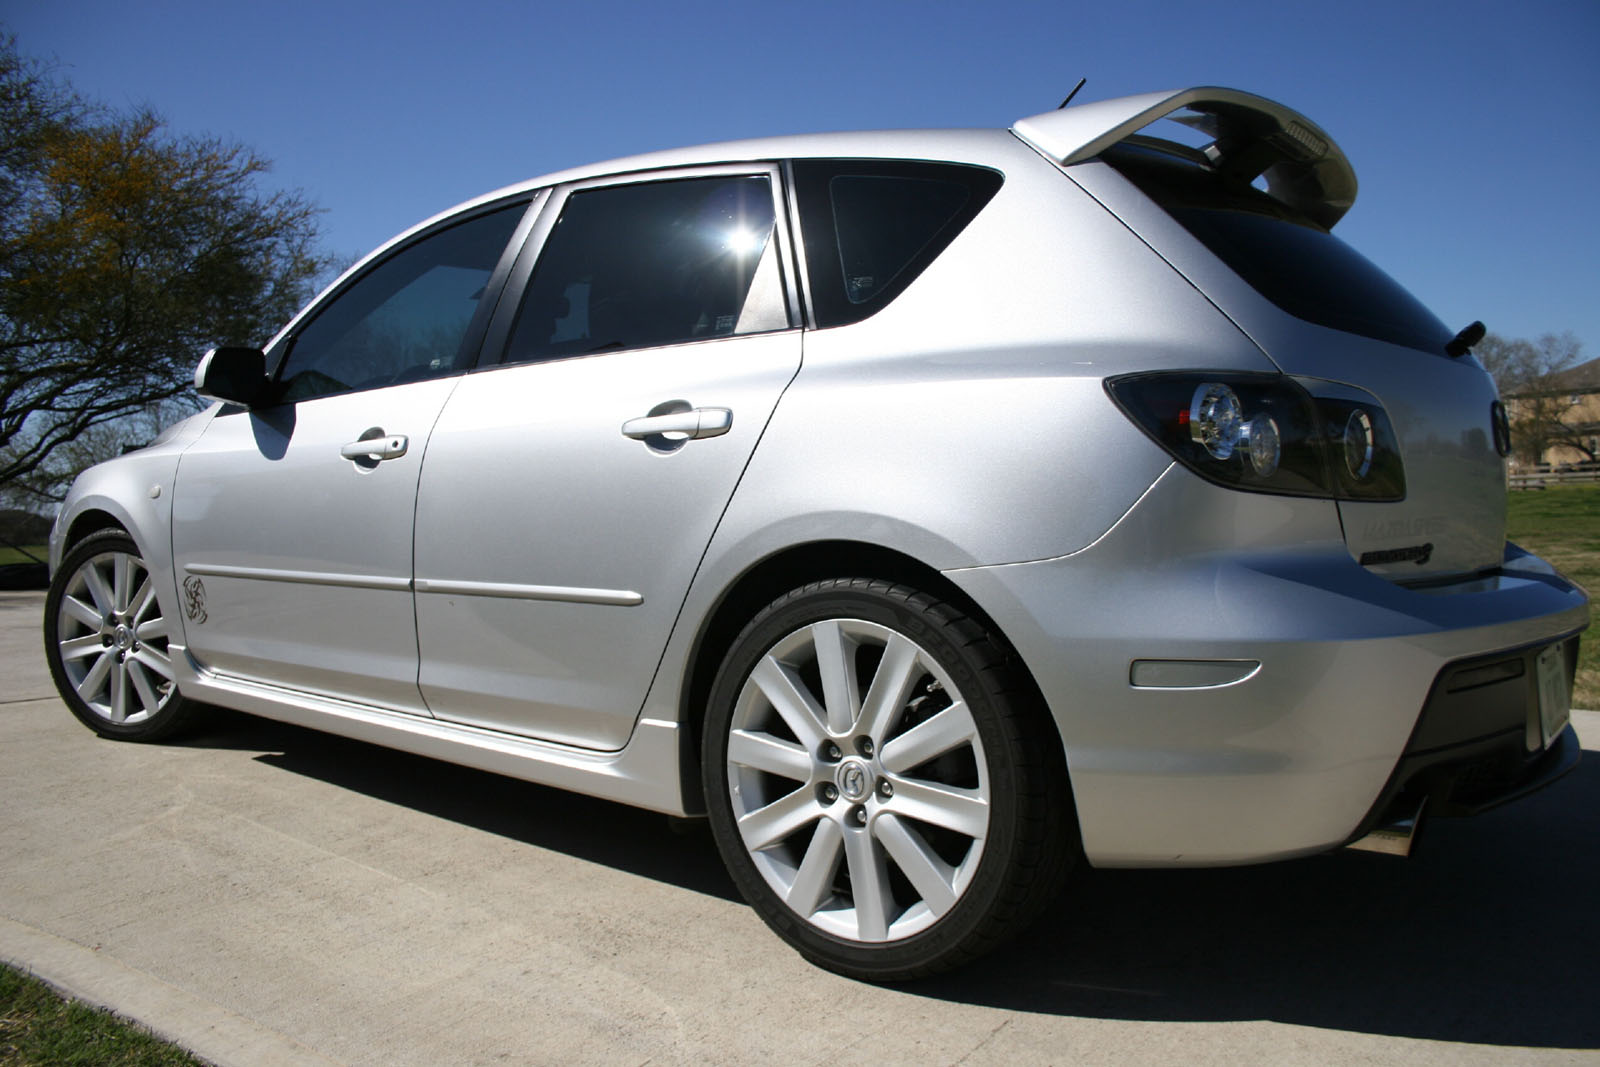 2007 mazda mazdaspeed3 gt for sale richmond texas. Black Bedroom Furniture Sets. Home Design Ideas